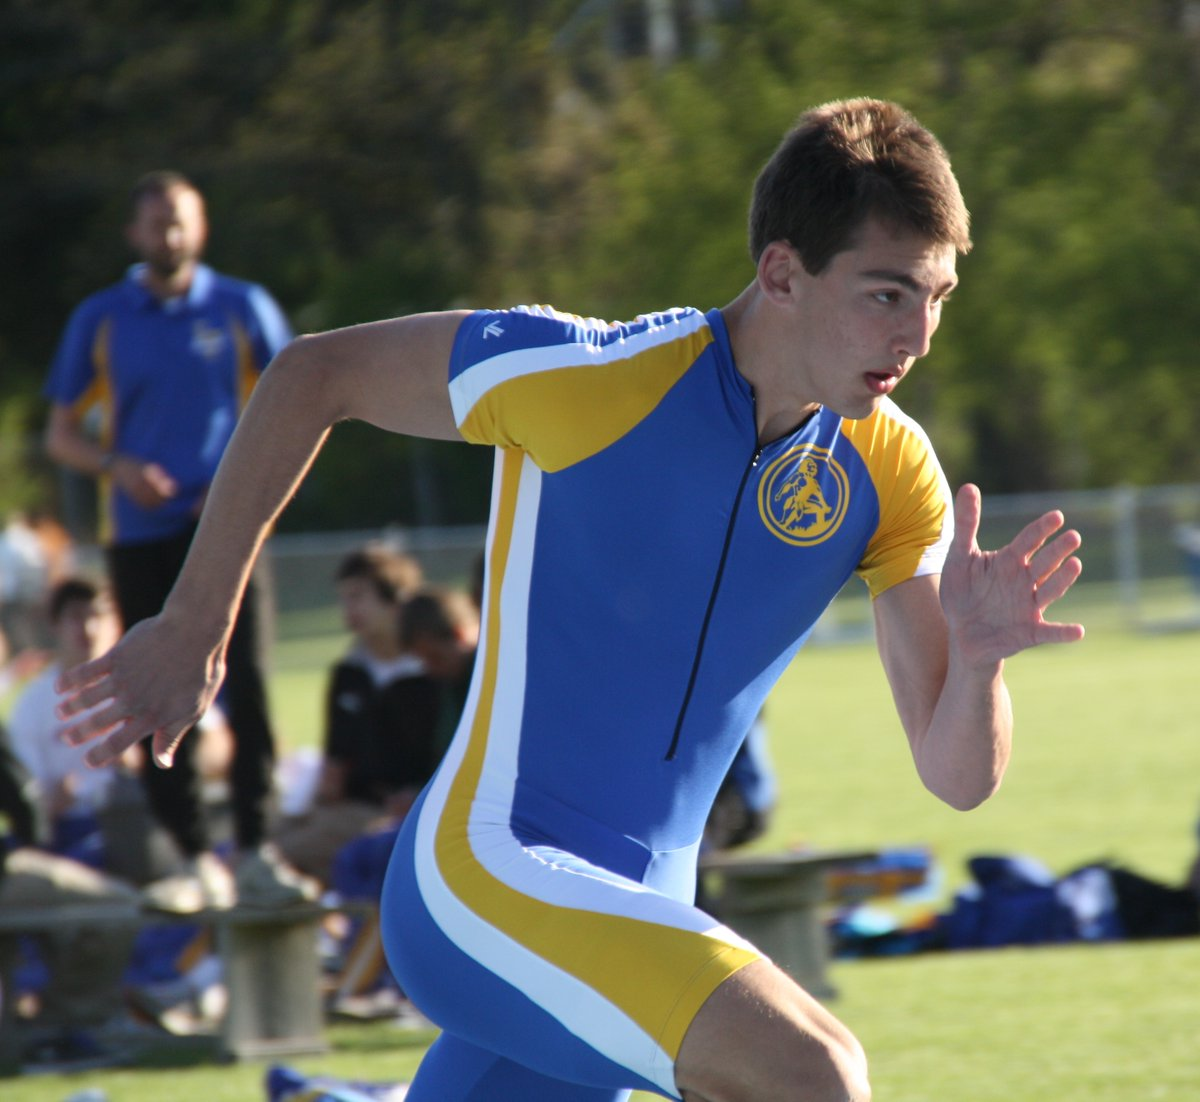 Can't forget the anchor leg of our first State qualifying 4x100m Relay. Nick Giordano was a 200m/400m specialist who also brought us home in the 4x100m. pic.twitter.com/ezZCYyvq0T